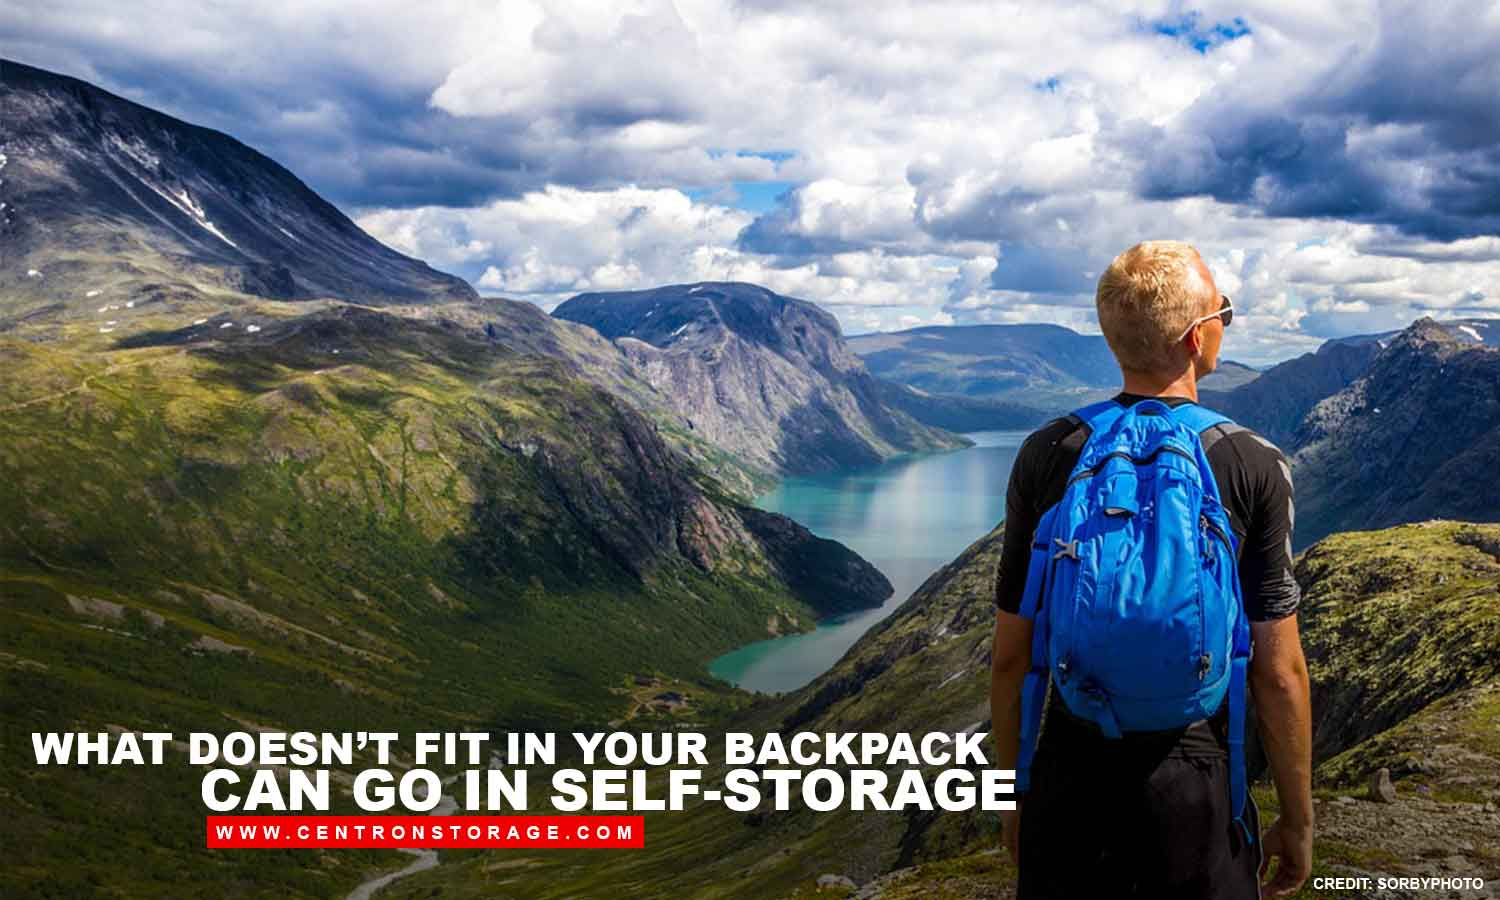 What doesn't fit in your backpack can go in self-storage